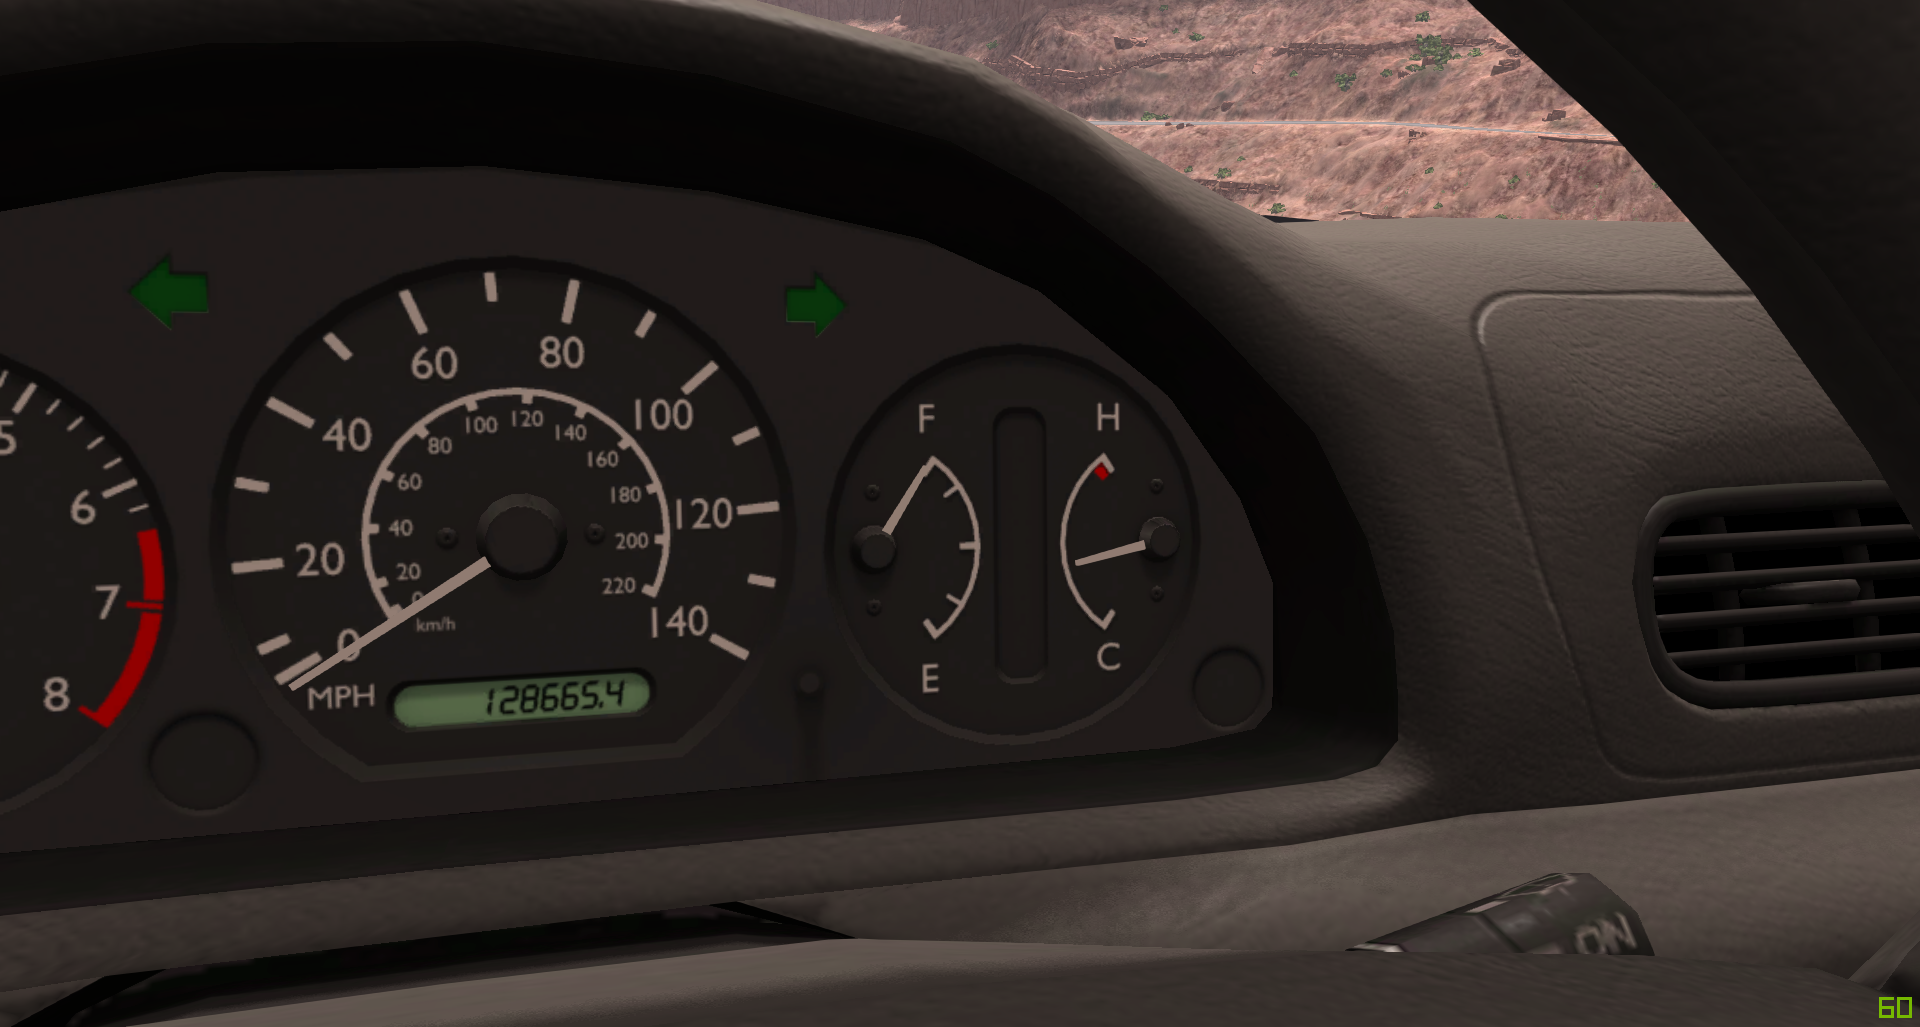 Updating or upgrading interiors | BeamNG